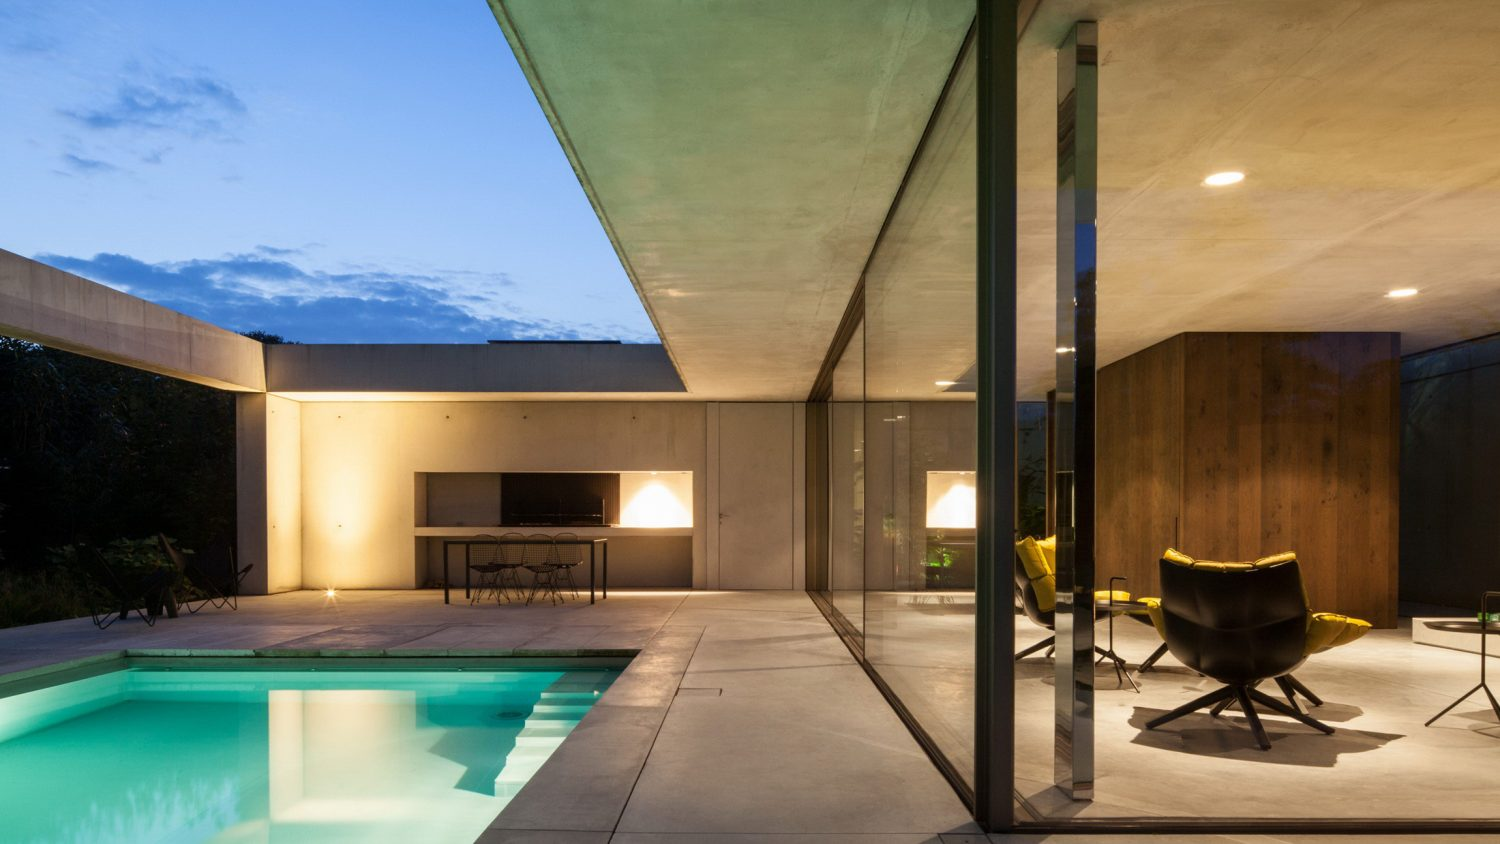 Poolhouse O by Steven Vandenborre Architects